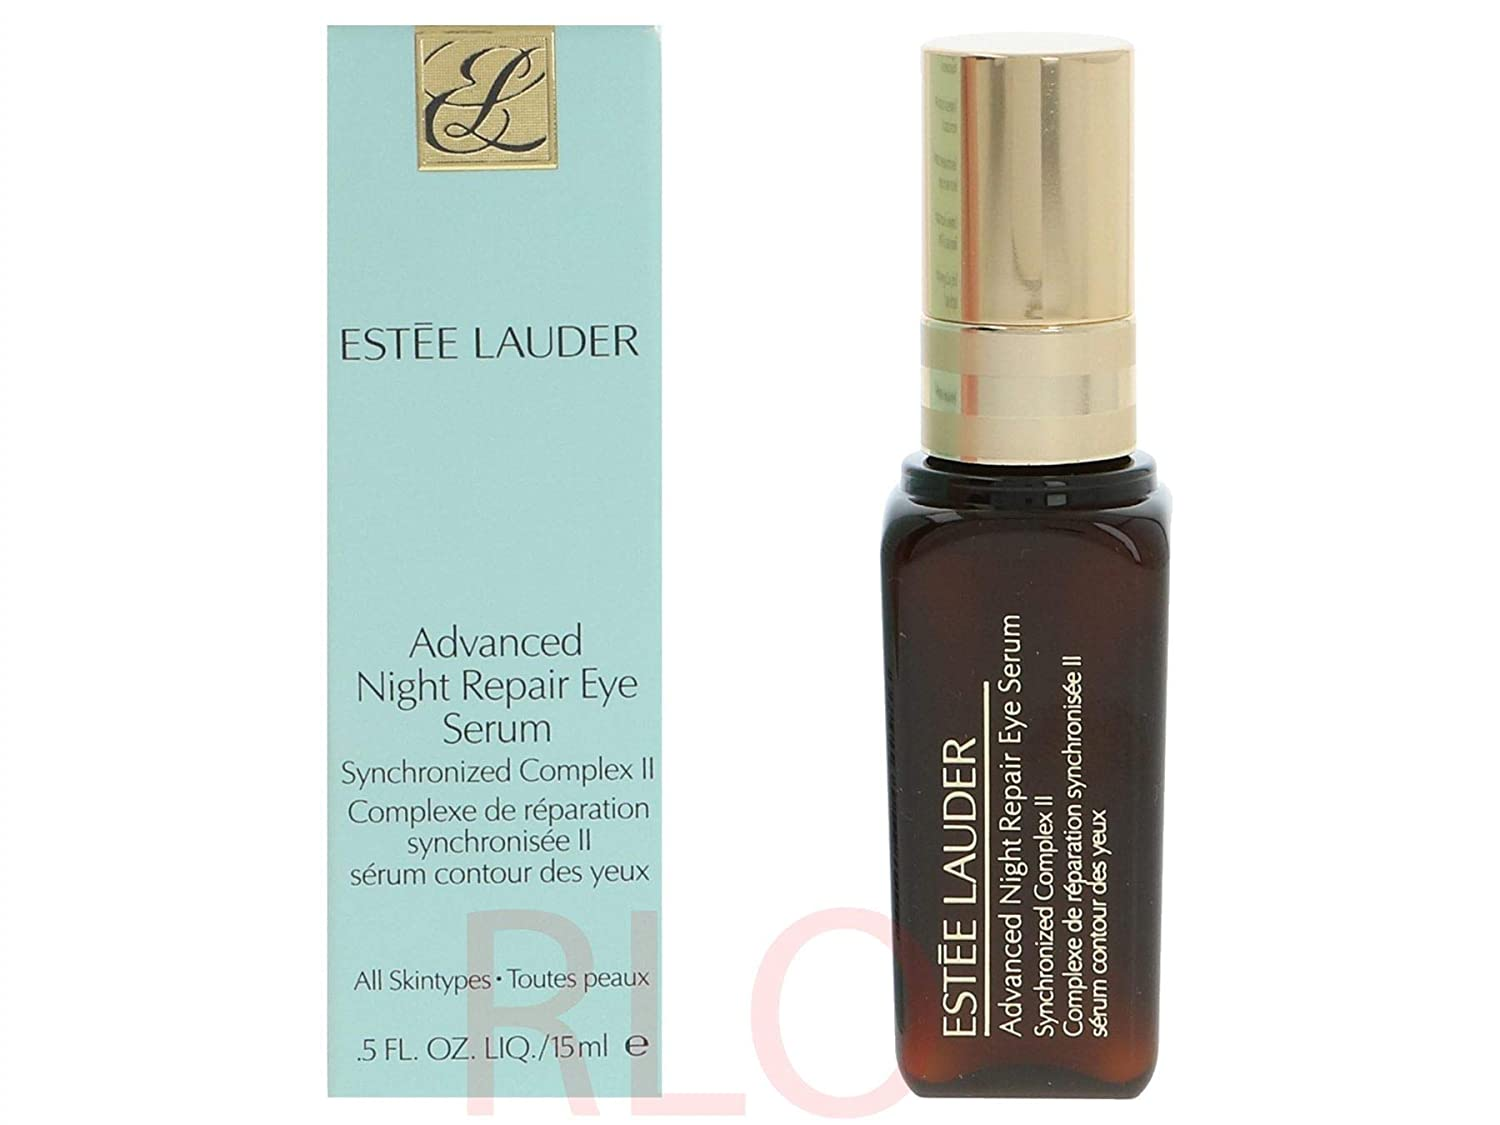 Estee Lauder Advanced Night Repair Eye Serum with Synchronized Complex II, 0.5 Ounce PerfumeWorldWide Inc. KE24802 EST00164